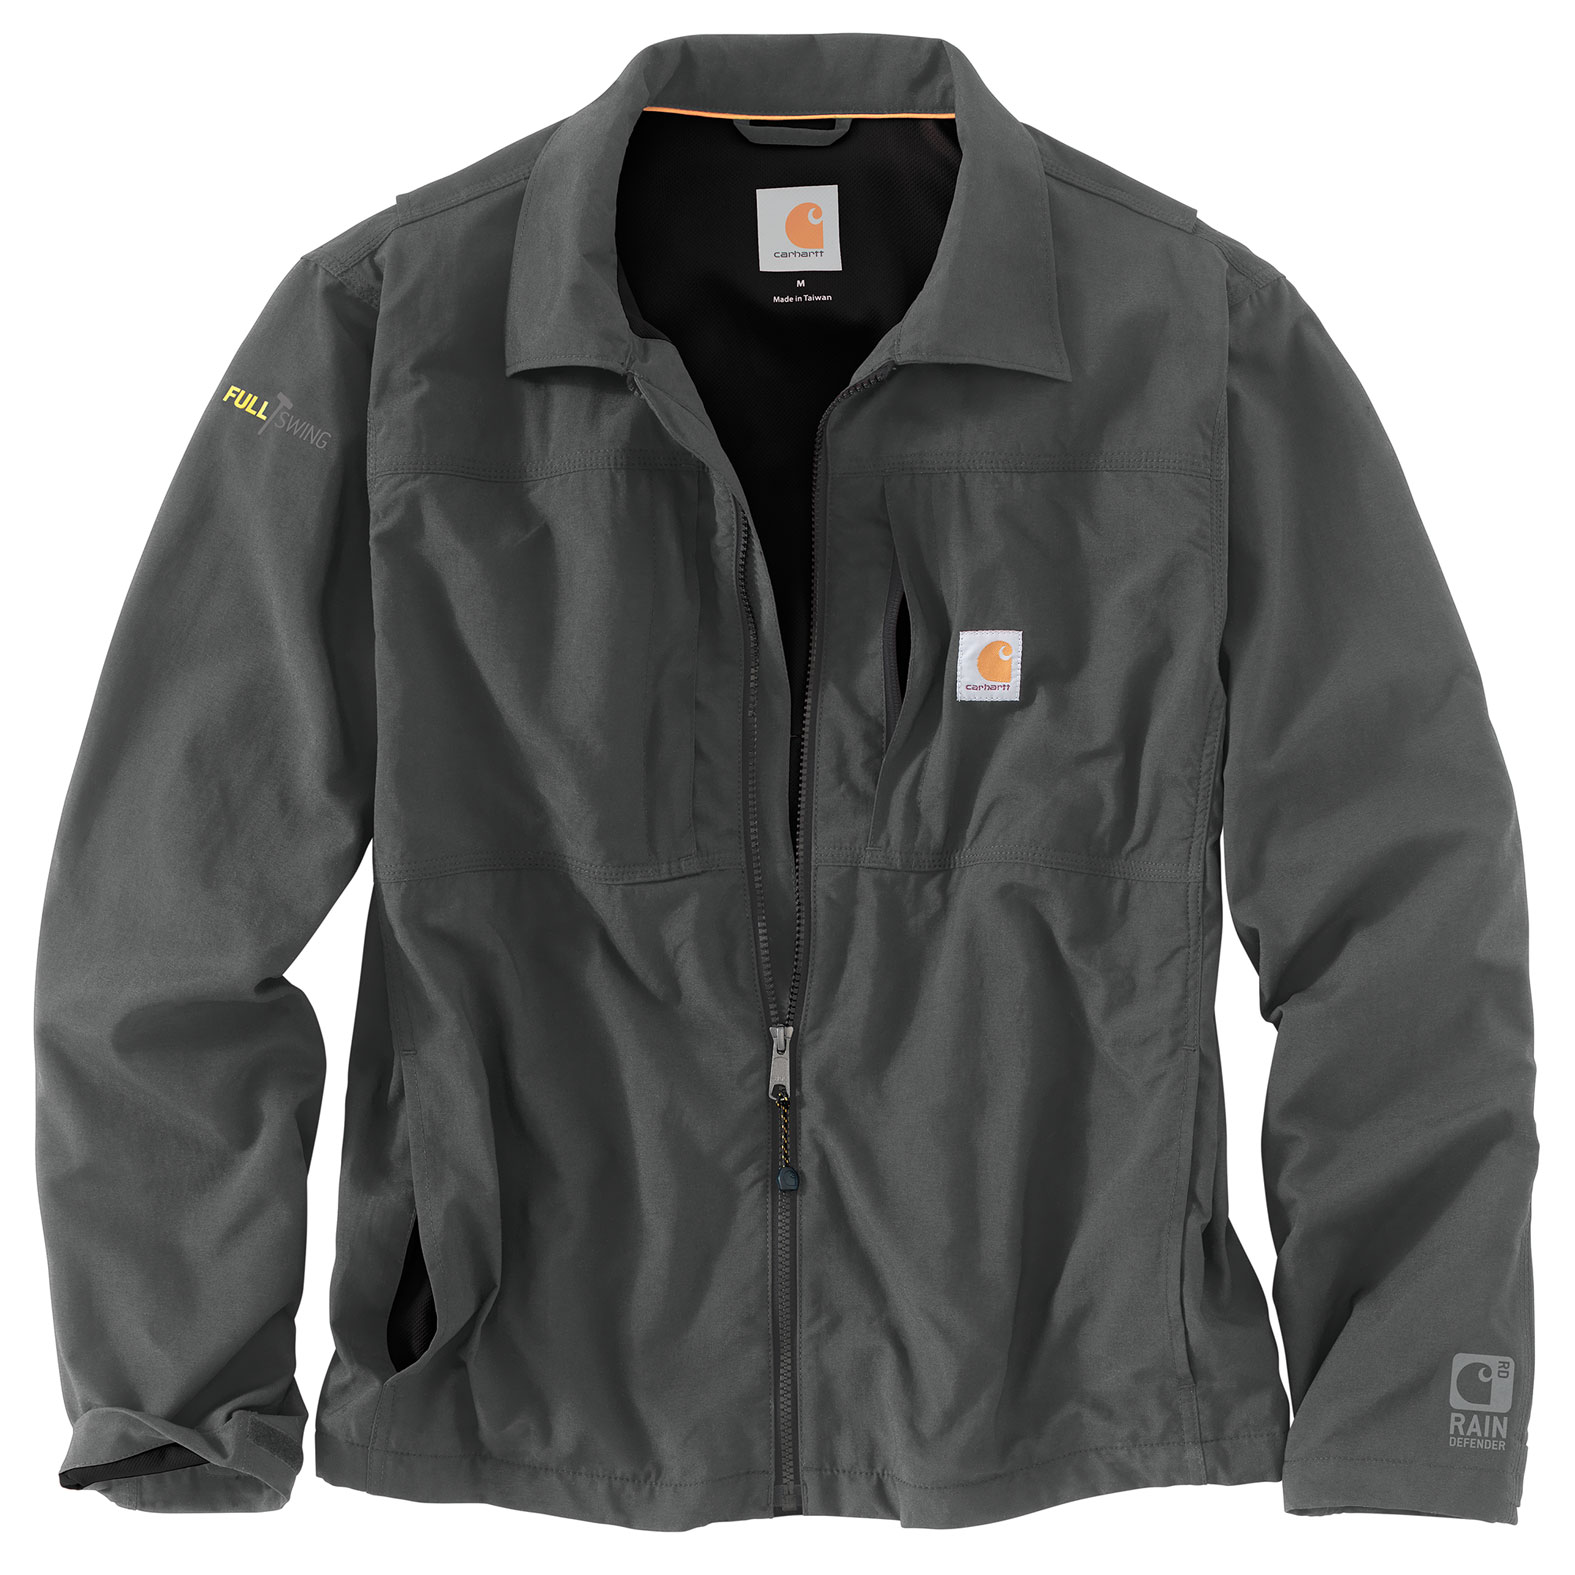 Full Swing® Briscoe Jacket by Carhartt